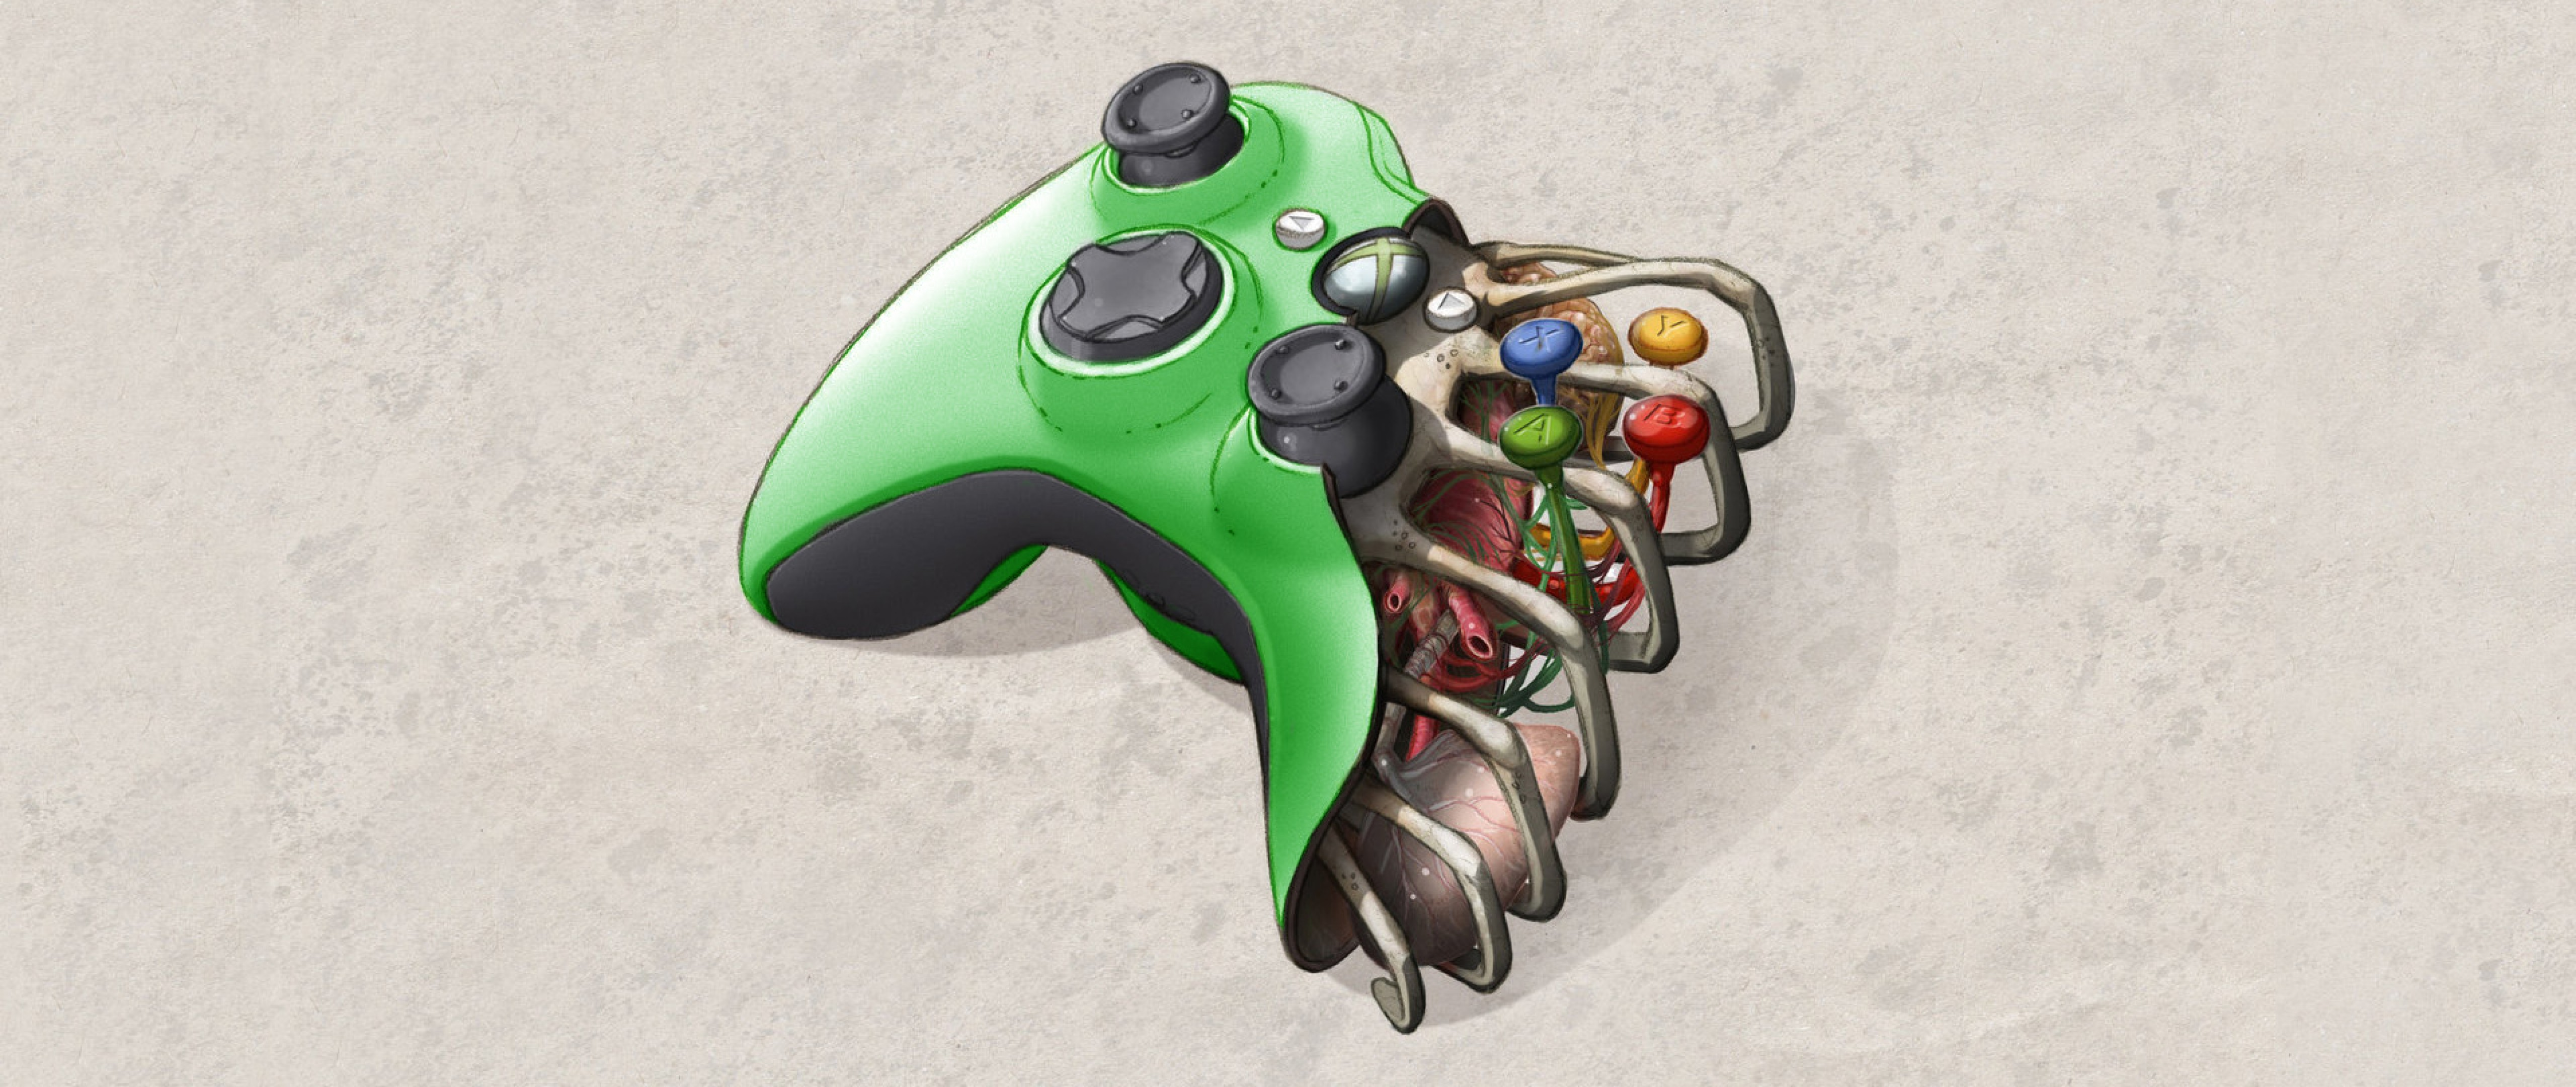 Xbox One Hd Wallpaper For Desktop And Mobiles 4k Ultra Hd Wide Tv Hd Wallpaper Wallpapers Net